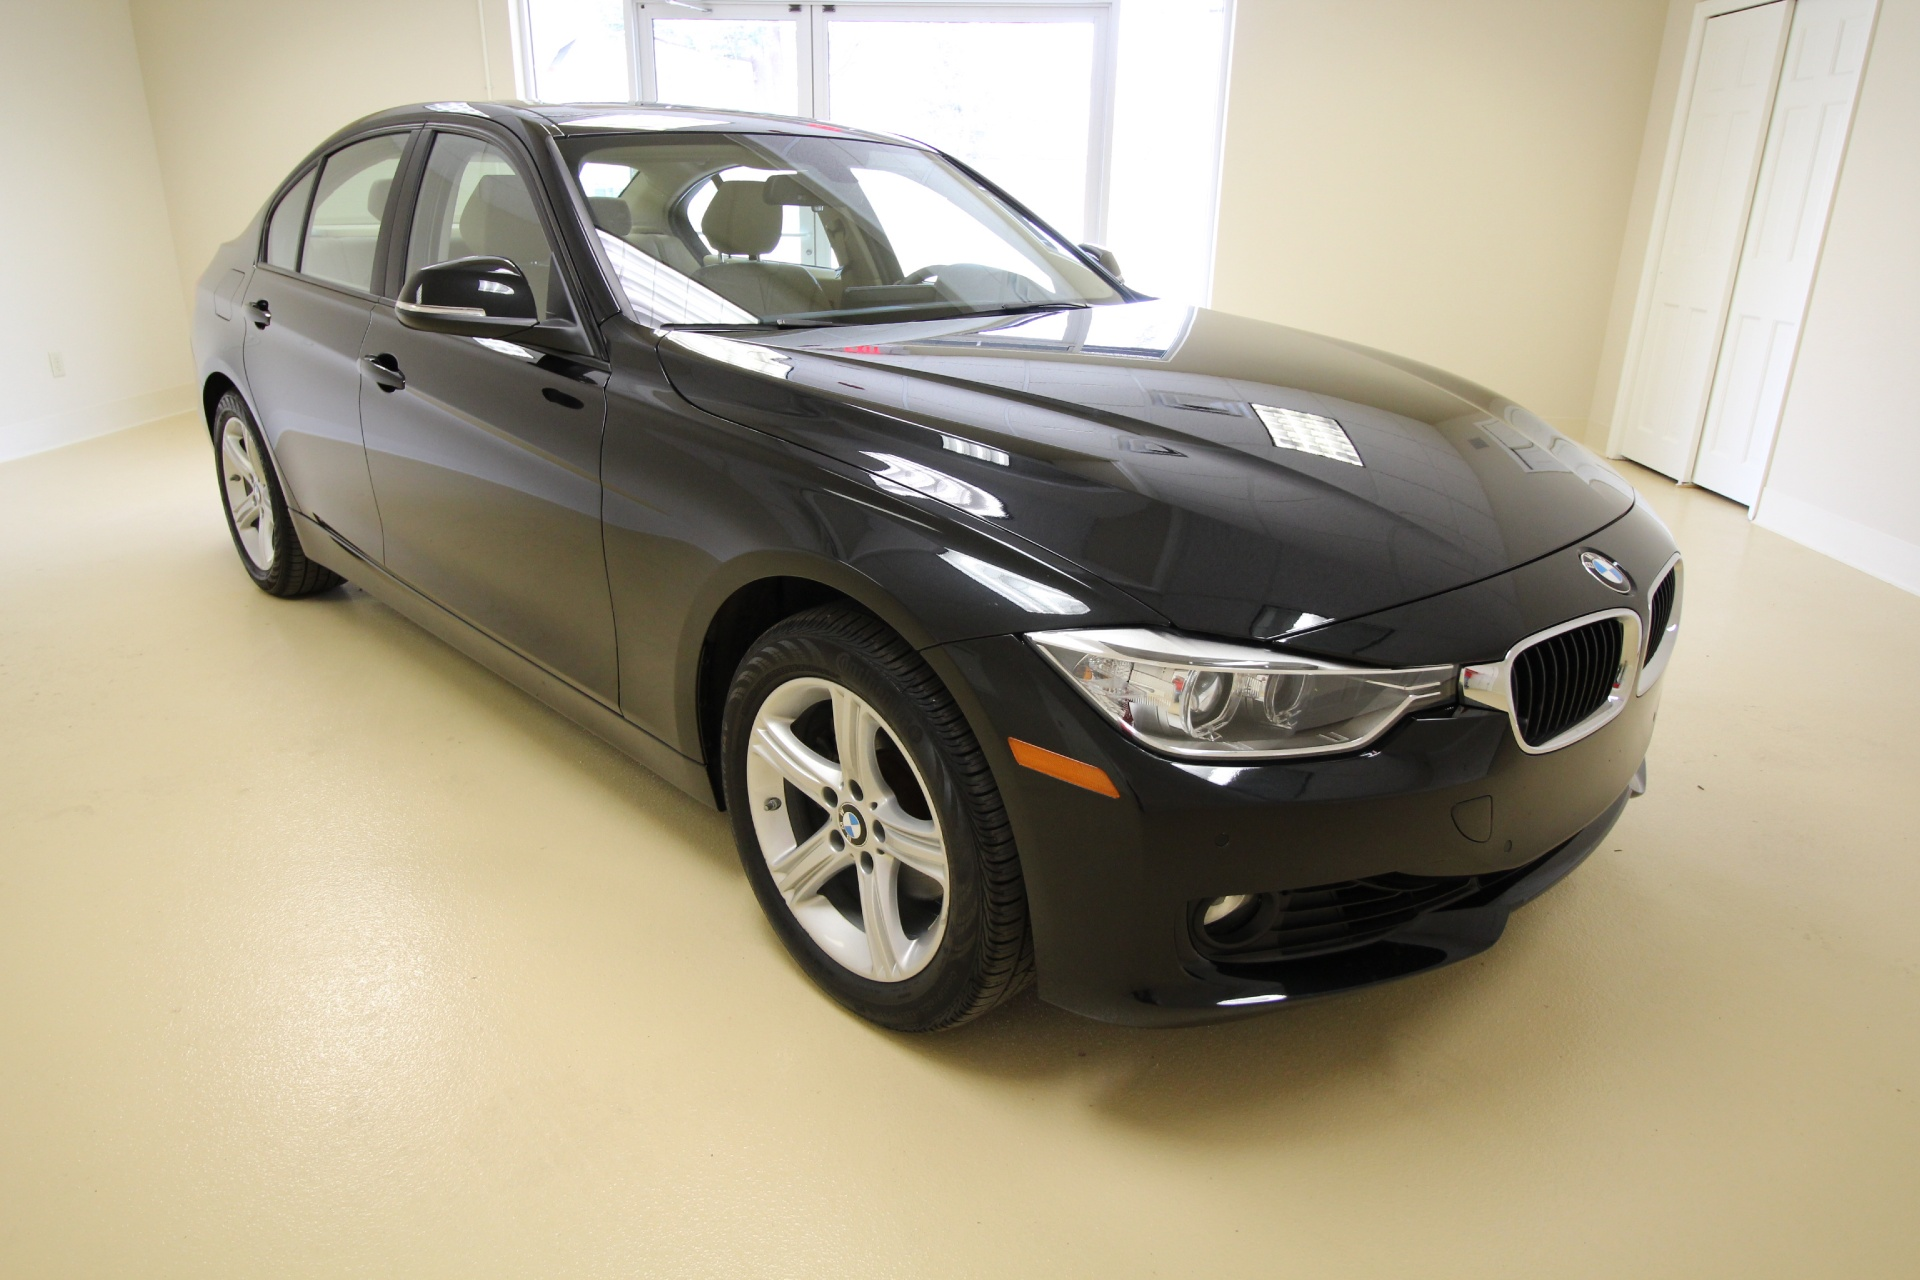 BMW Series I XDrive LOADED WITH OPTIONSLED HALOSXENONS - Bmw 328i options